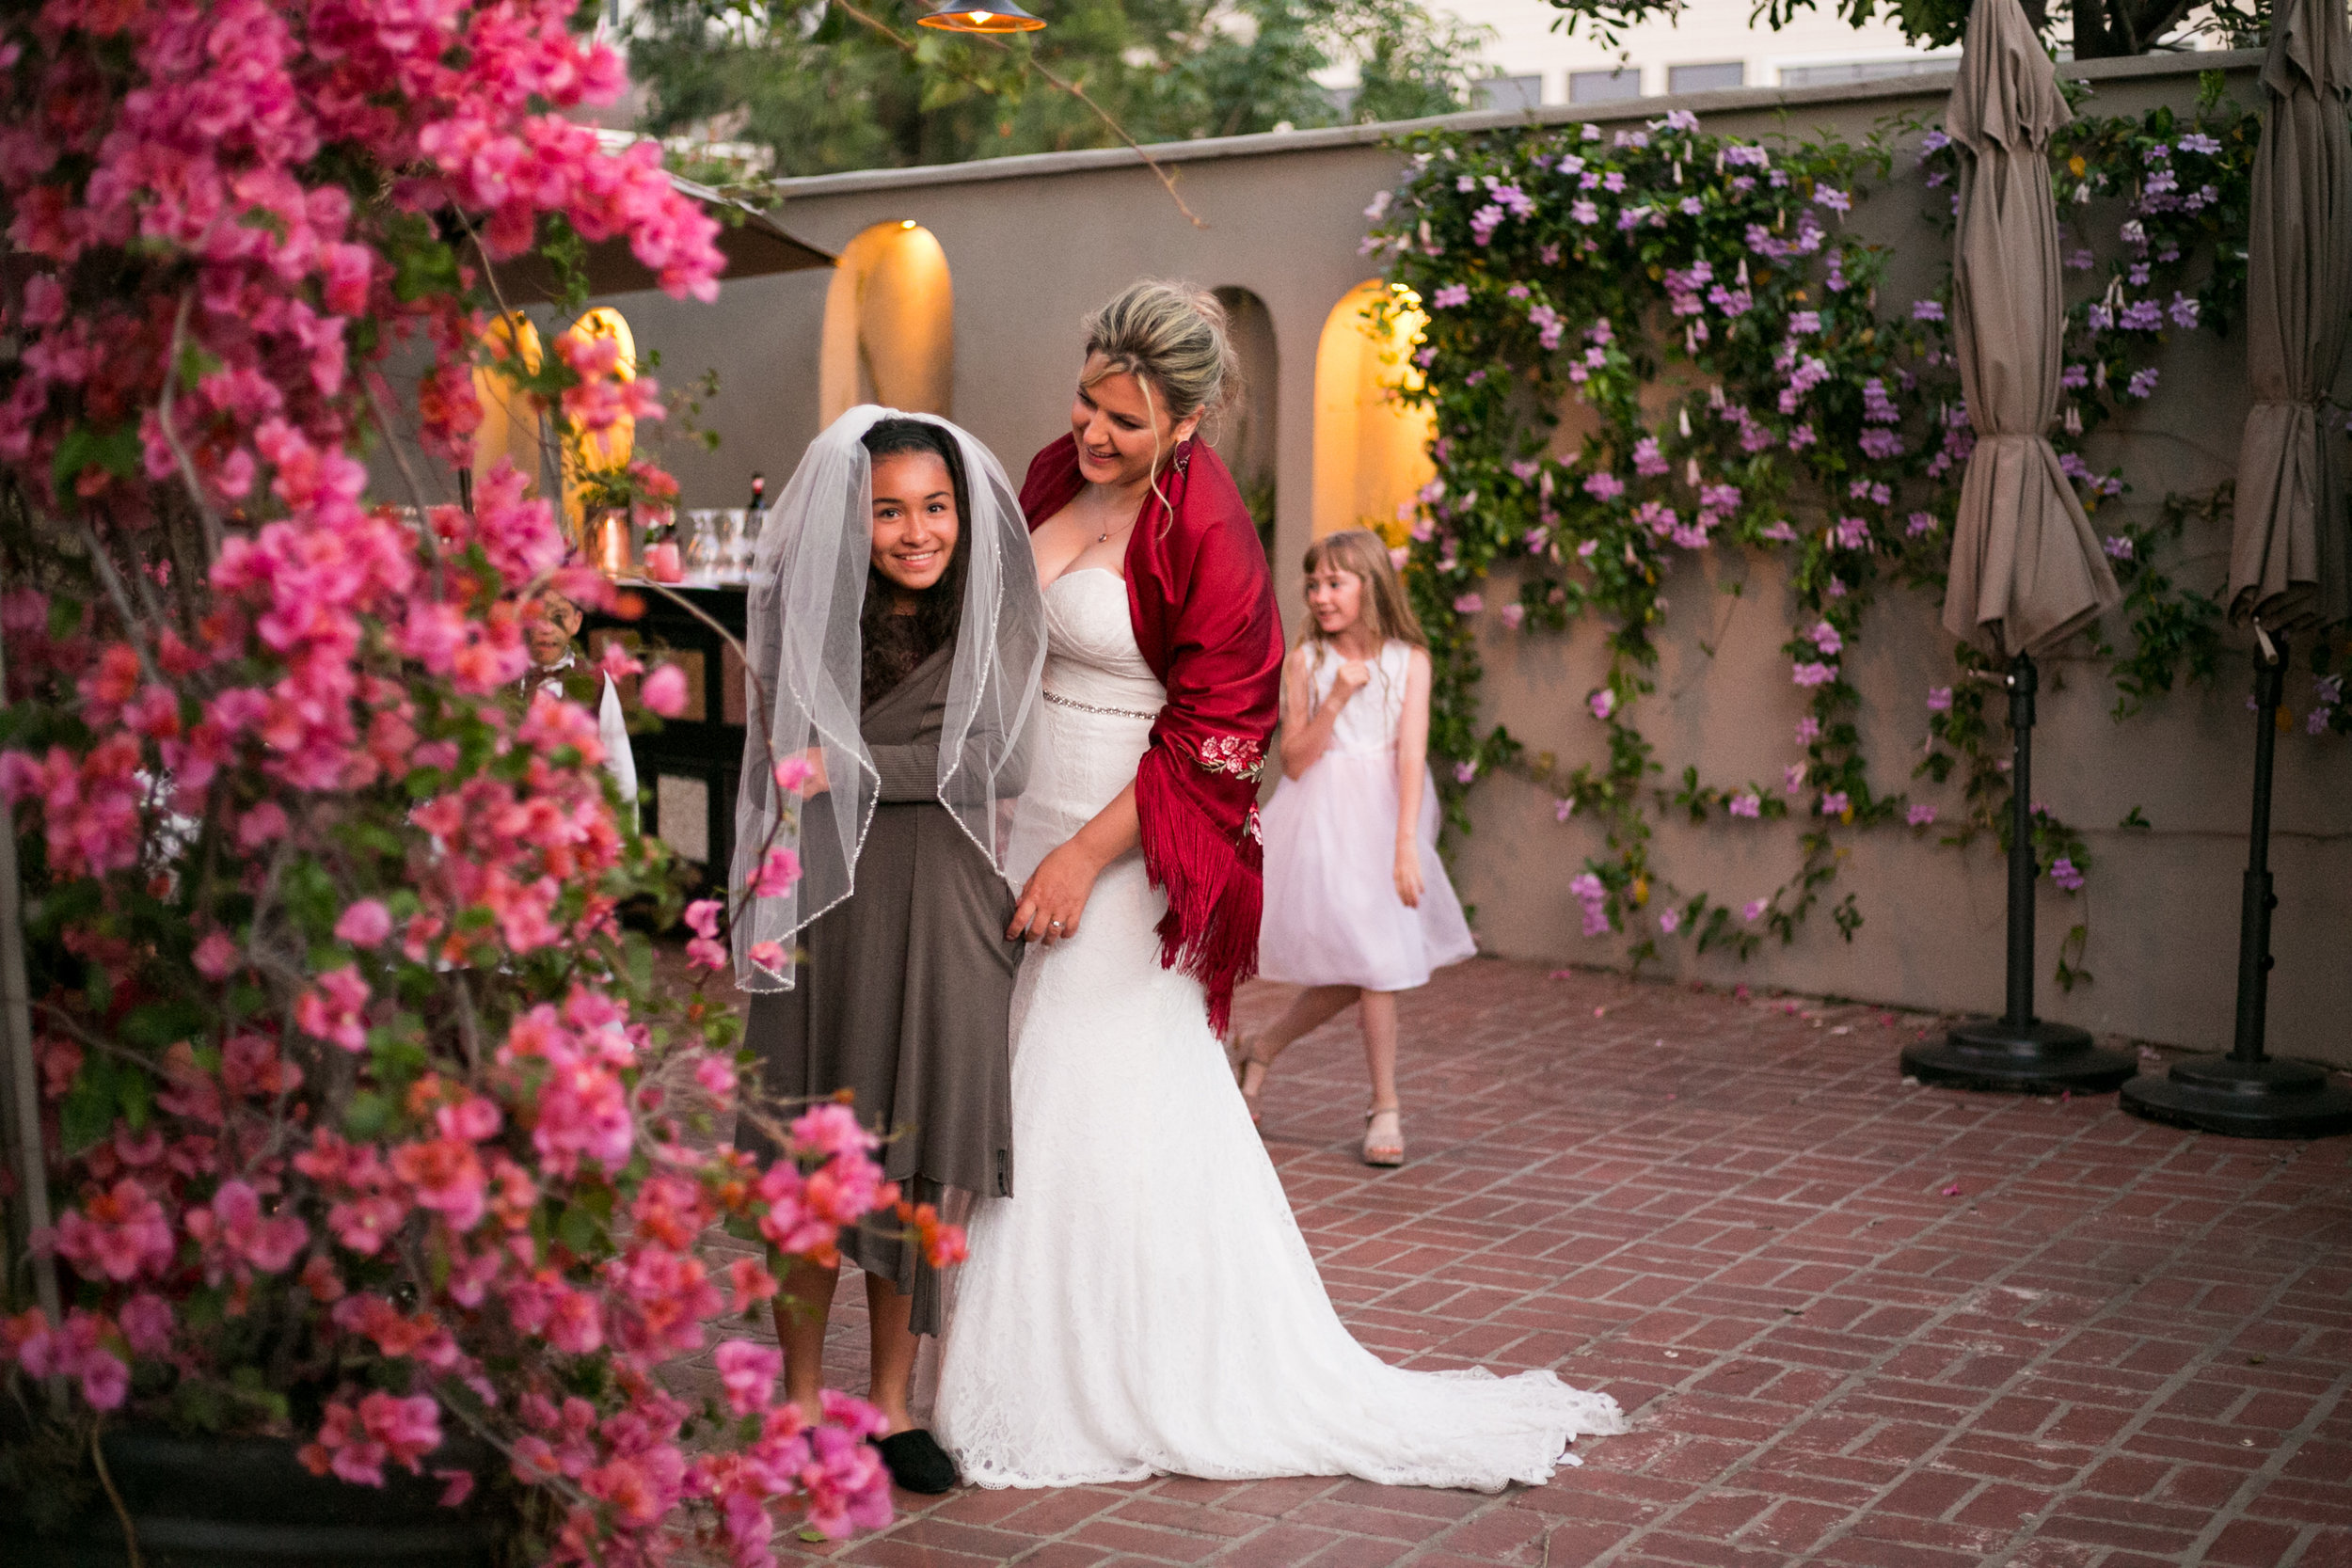 32-2019-May-wedding-ana-web.jpg